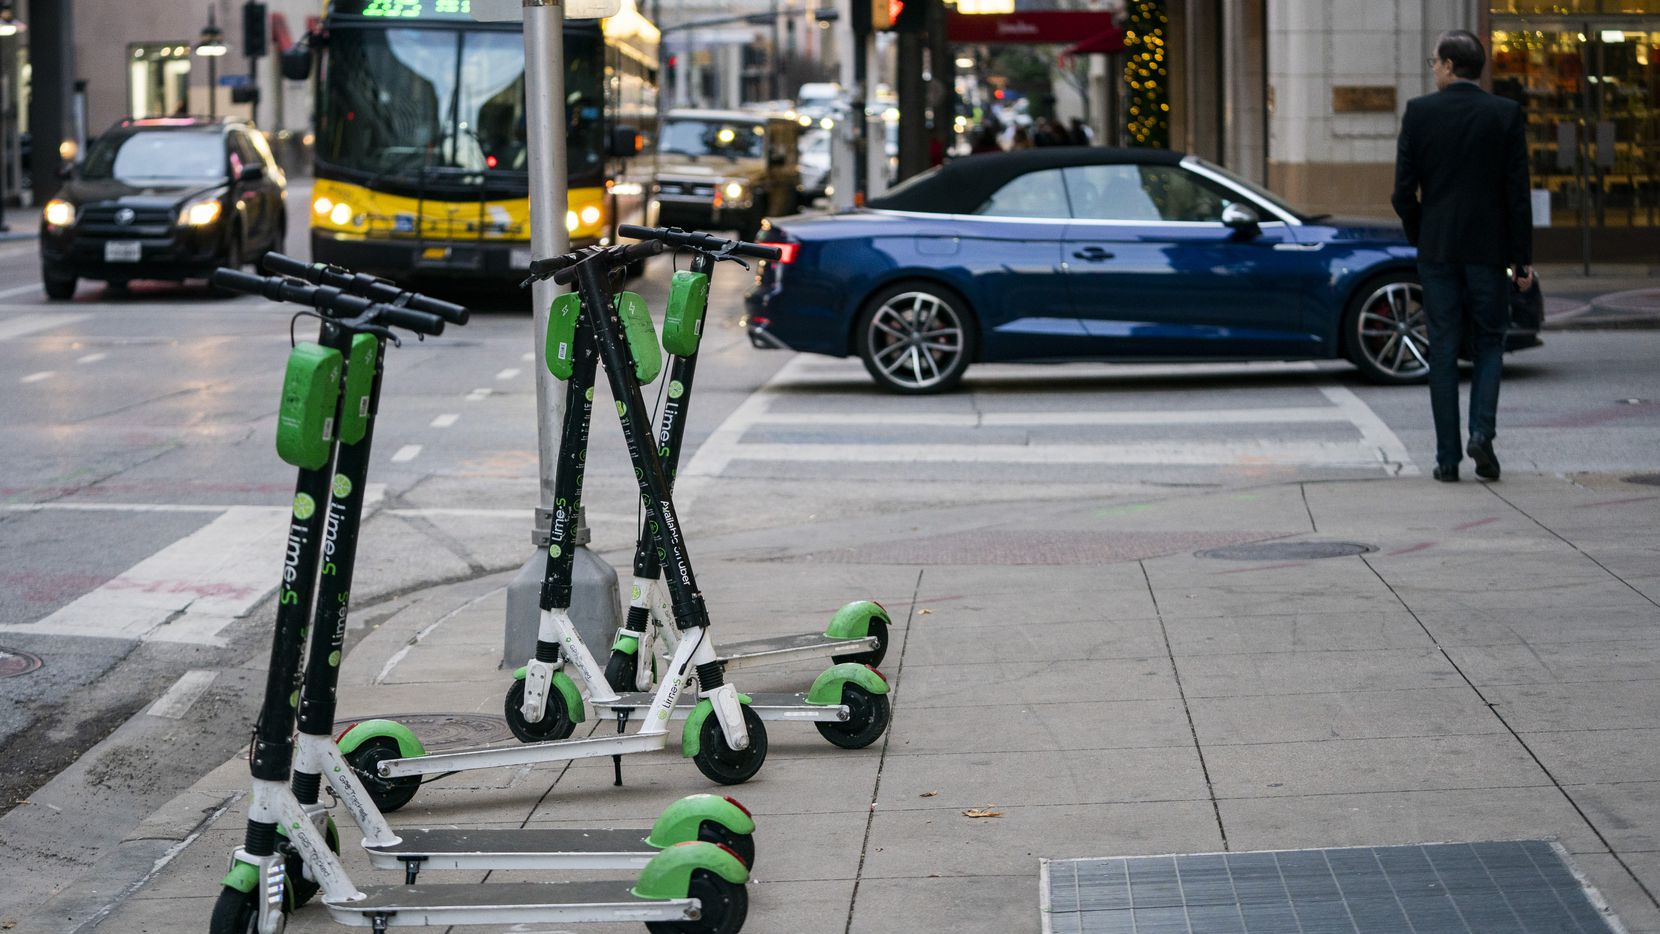 Lime electric scooters sat on the sidewalk on Commerce Street in downtown Dallas on Dec. 4, 2019. City officials halted the program due to public safety concerns. The scooters are expected to return later this month after new rules are added.